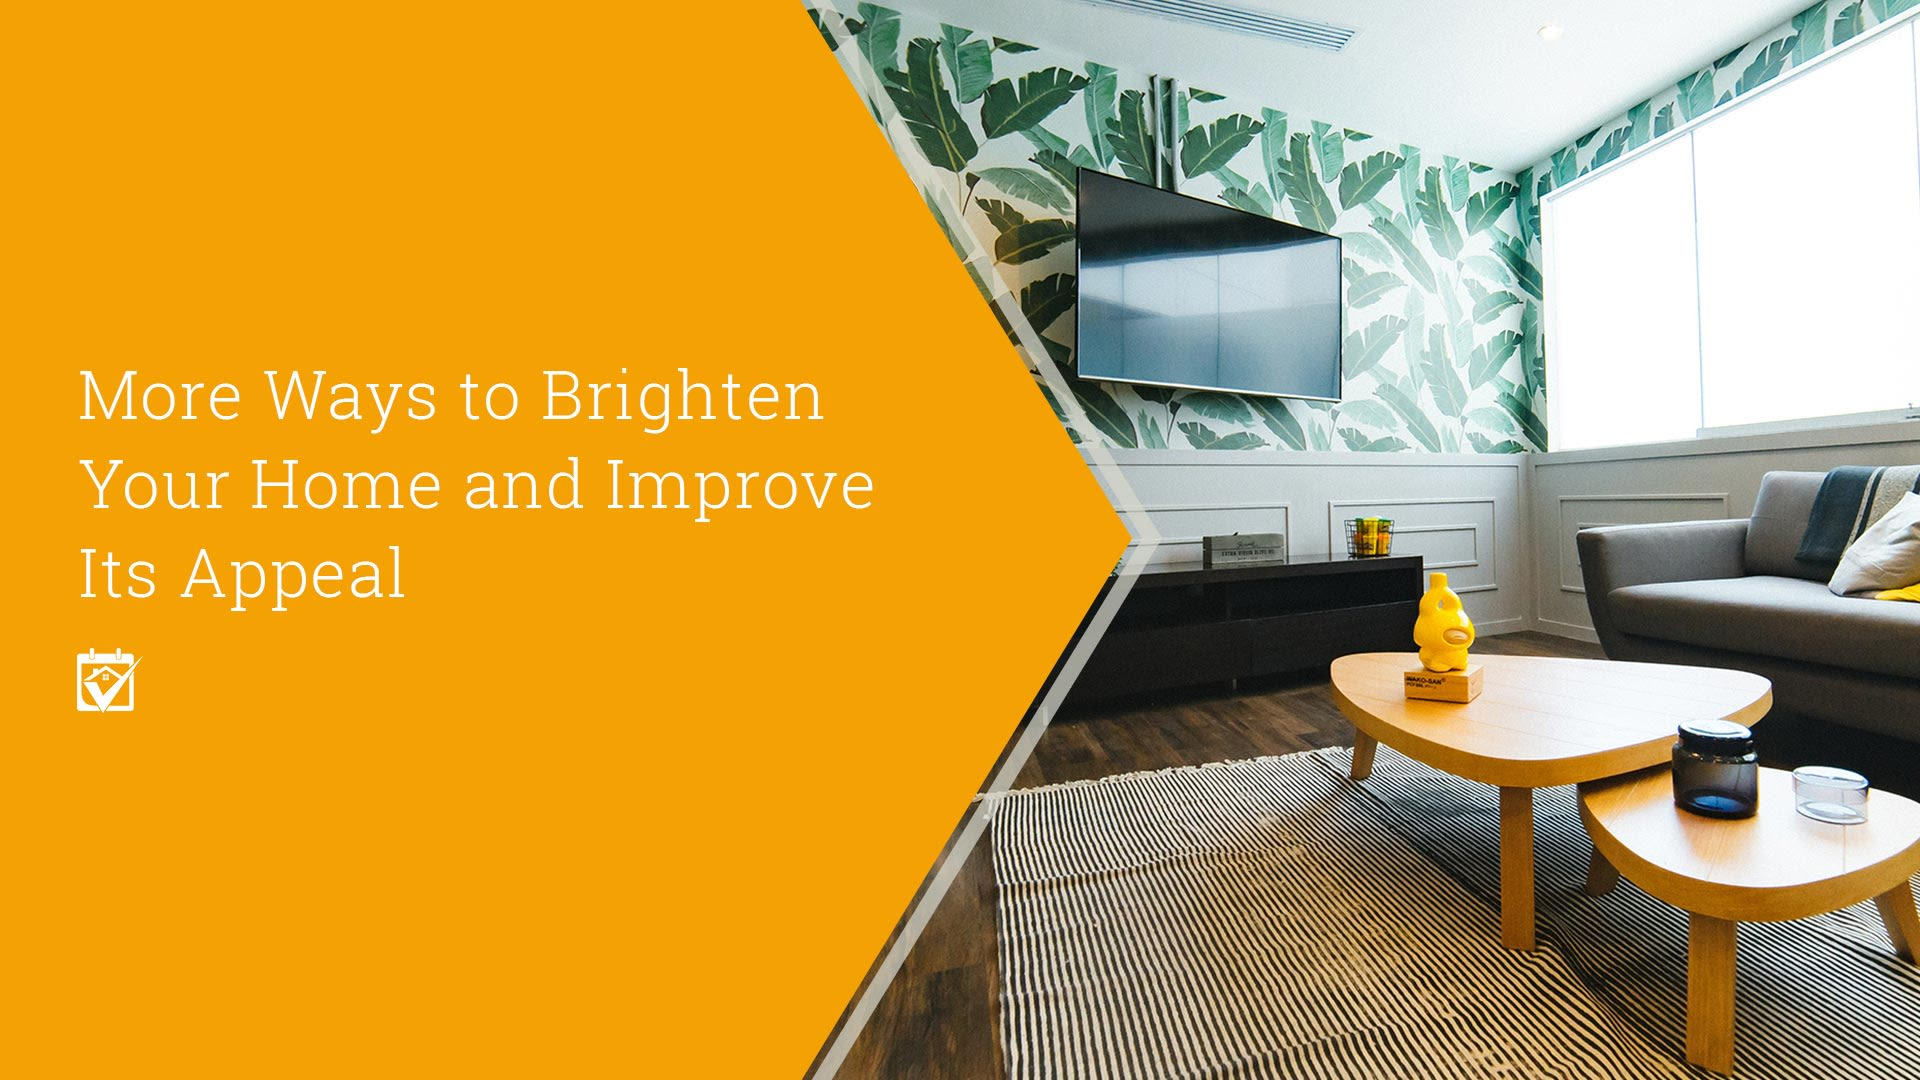 More Ways To Brighten Your Home And Improve Its Appeal